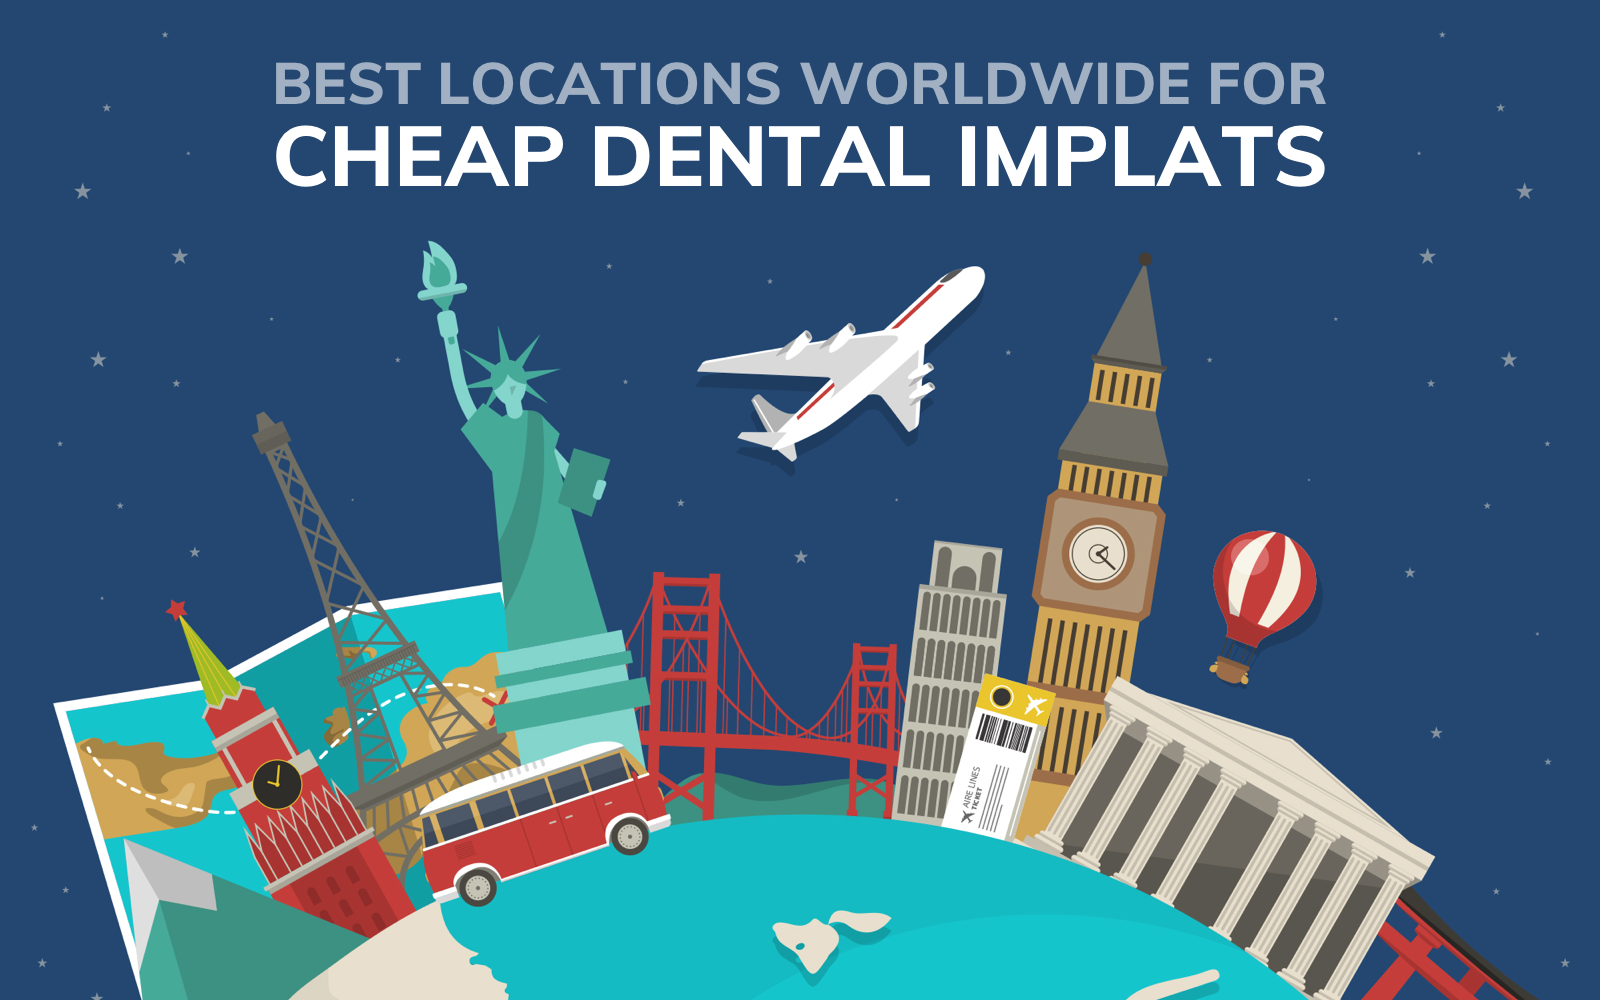 Best locations worldwide for cheap dental implants